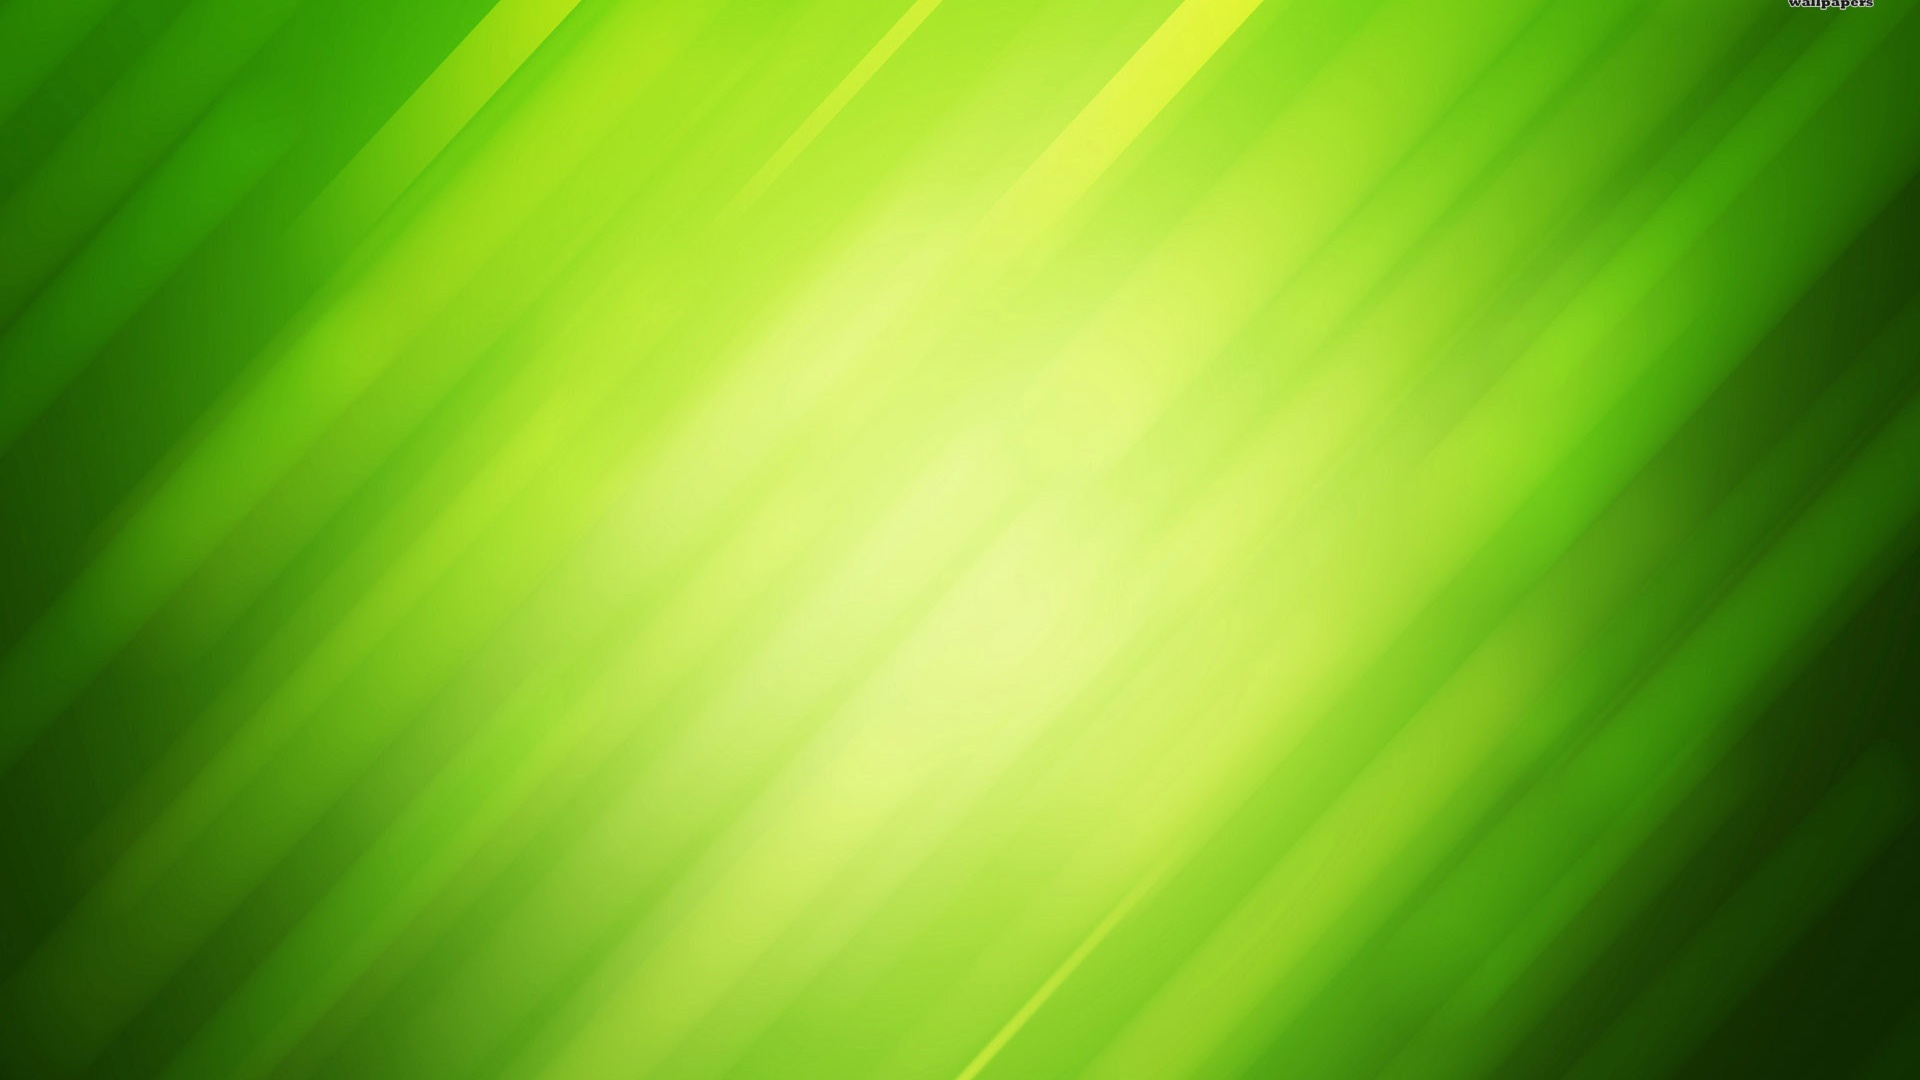 1920x1080 Green rays, abstract